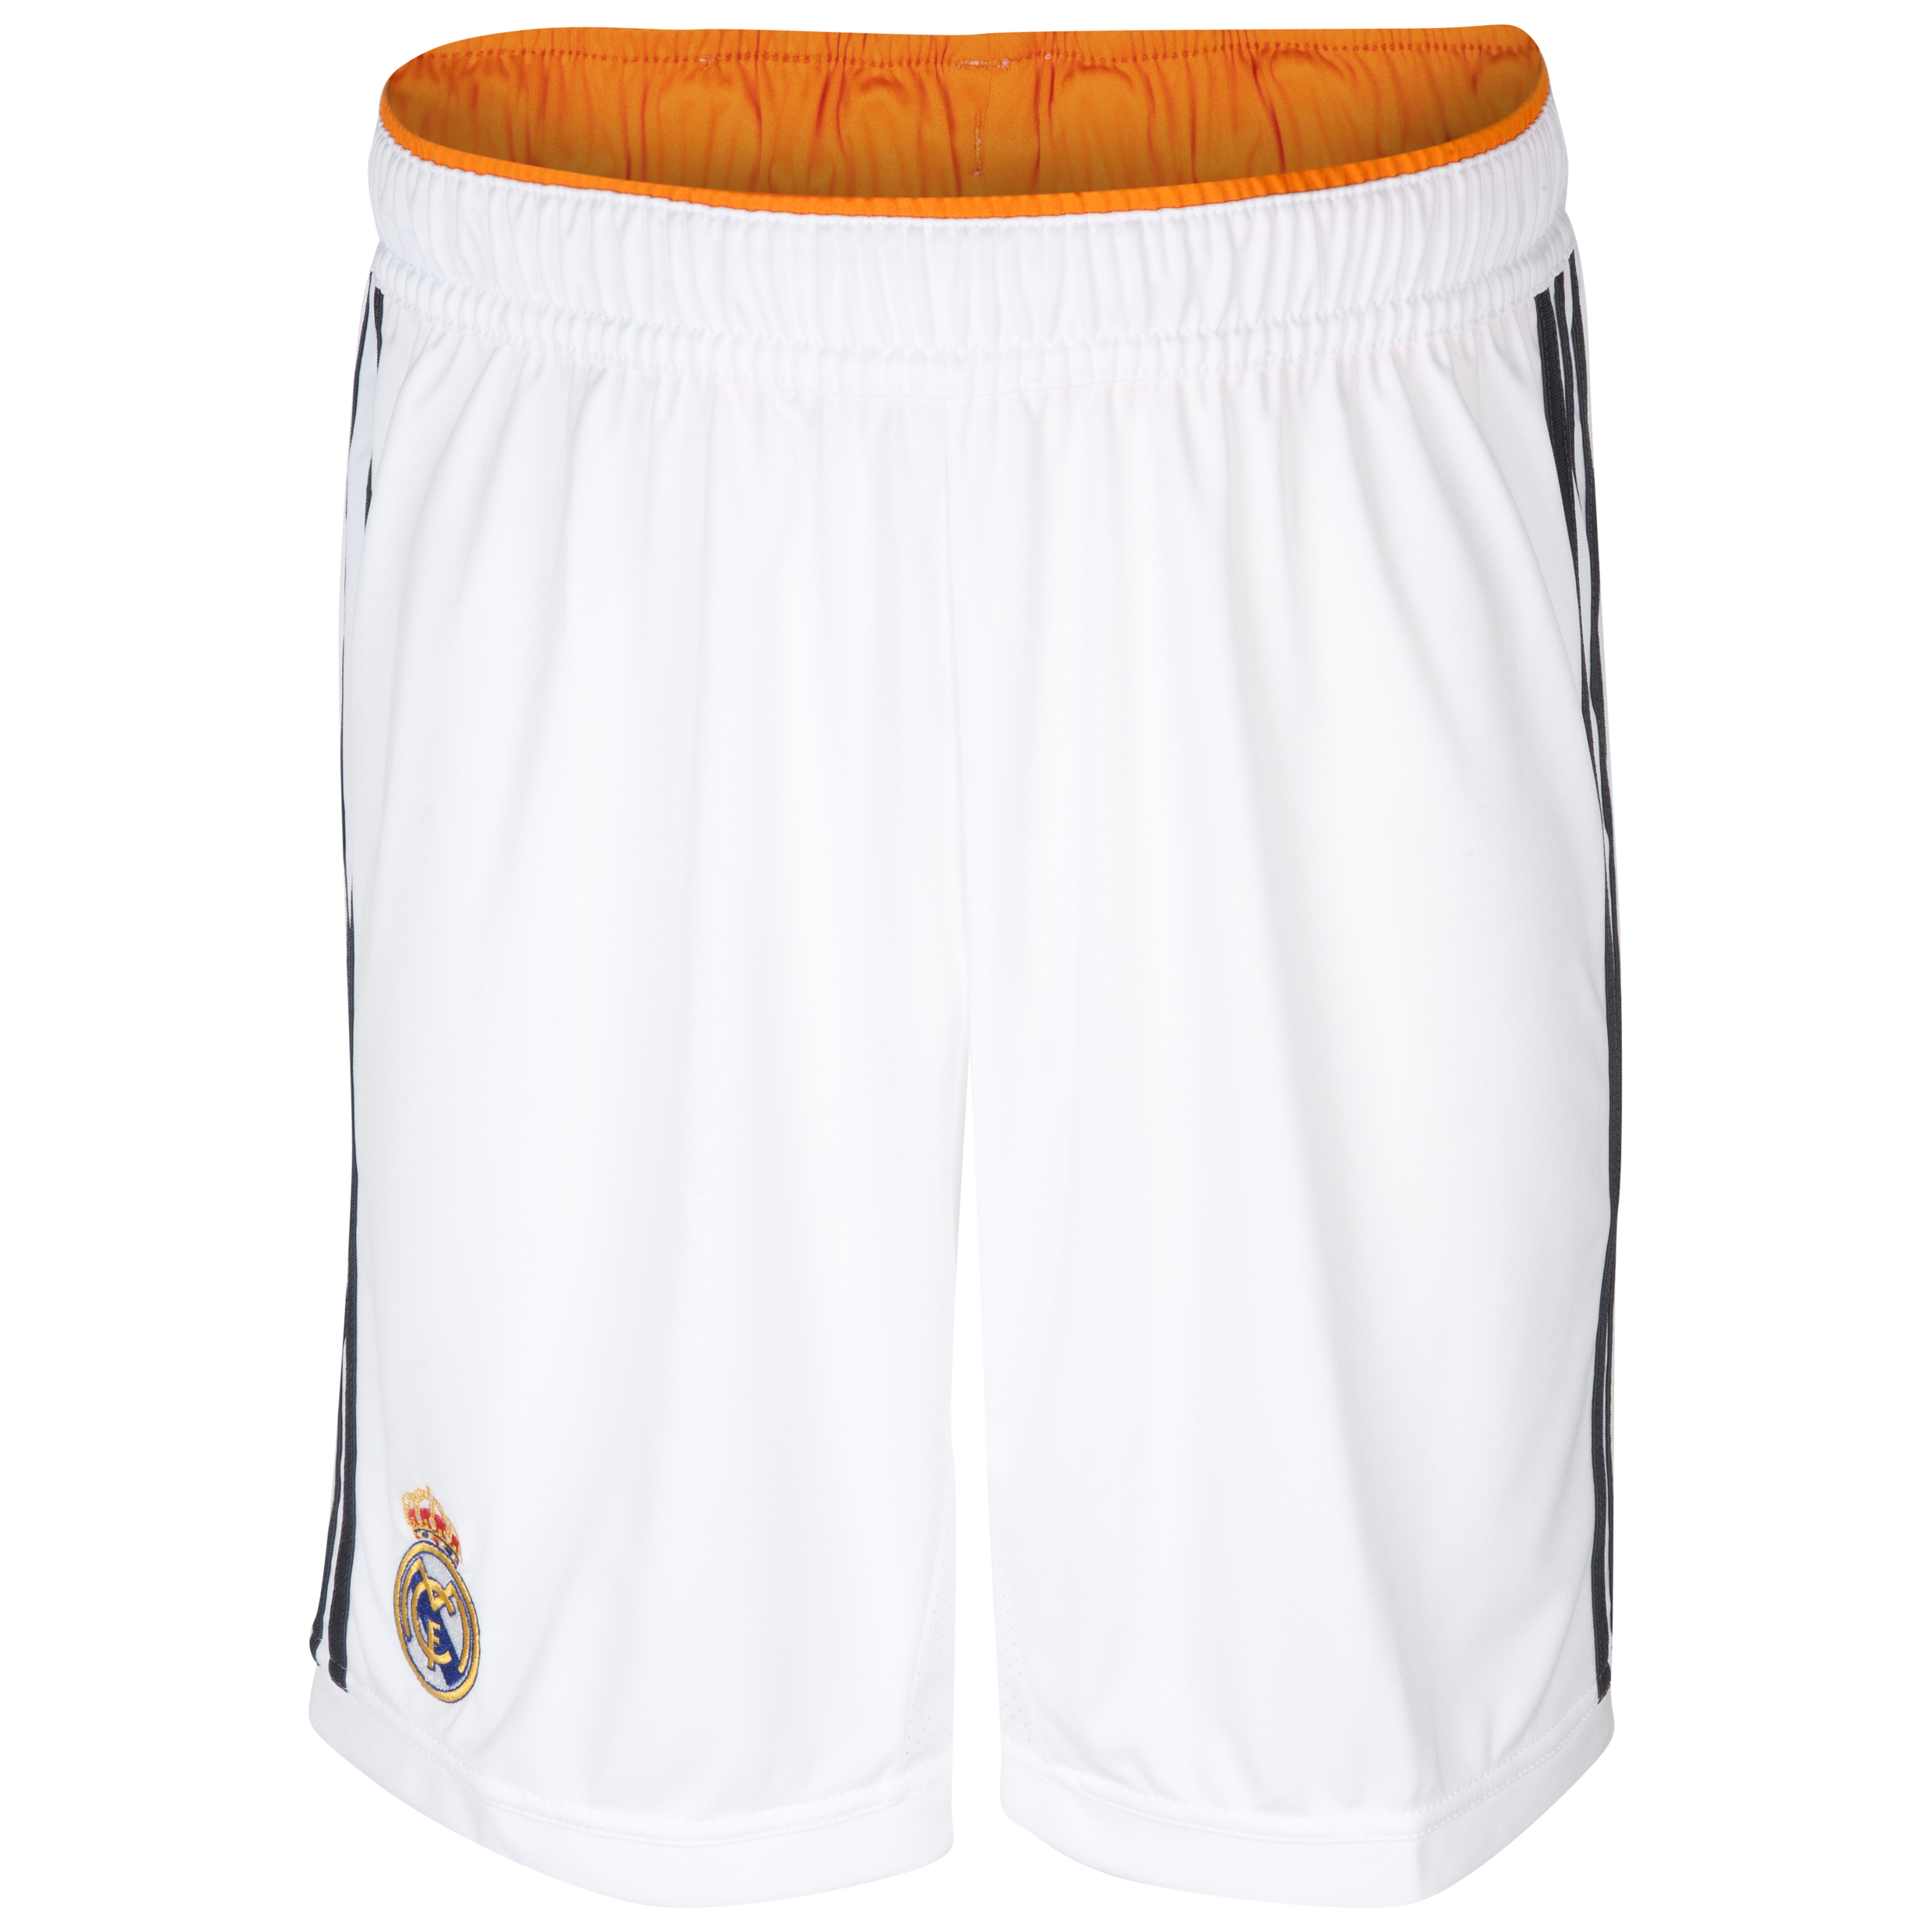 Real Madrid Home Shorts 2013/14